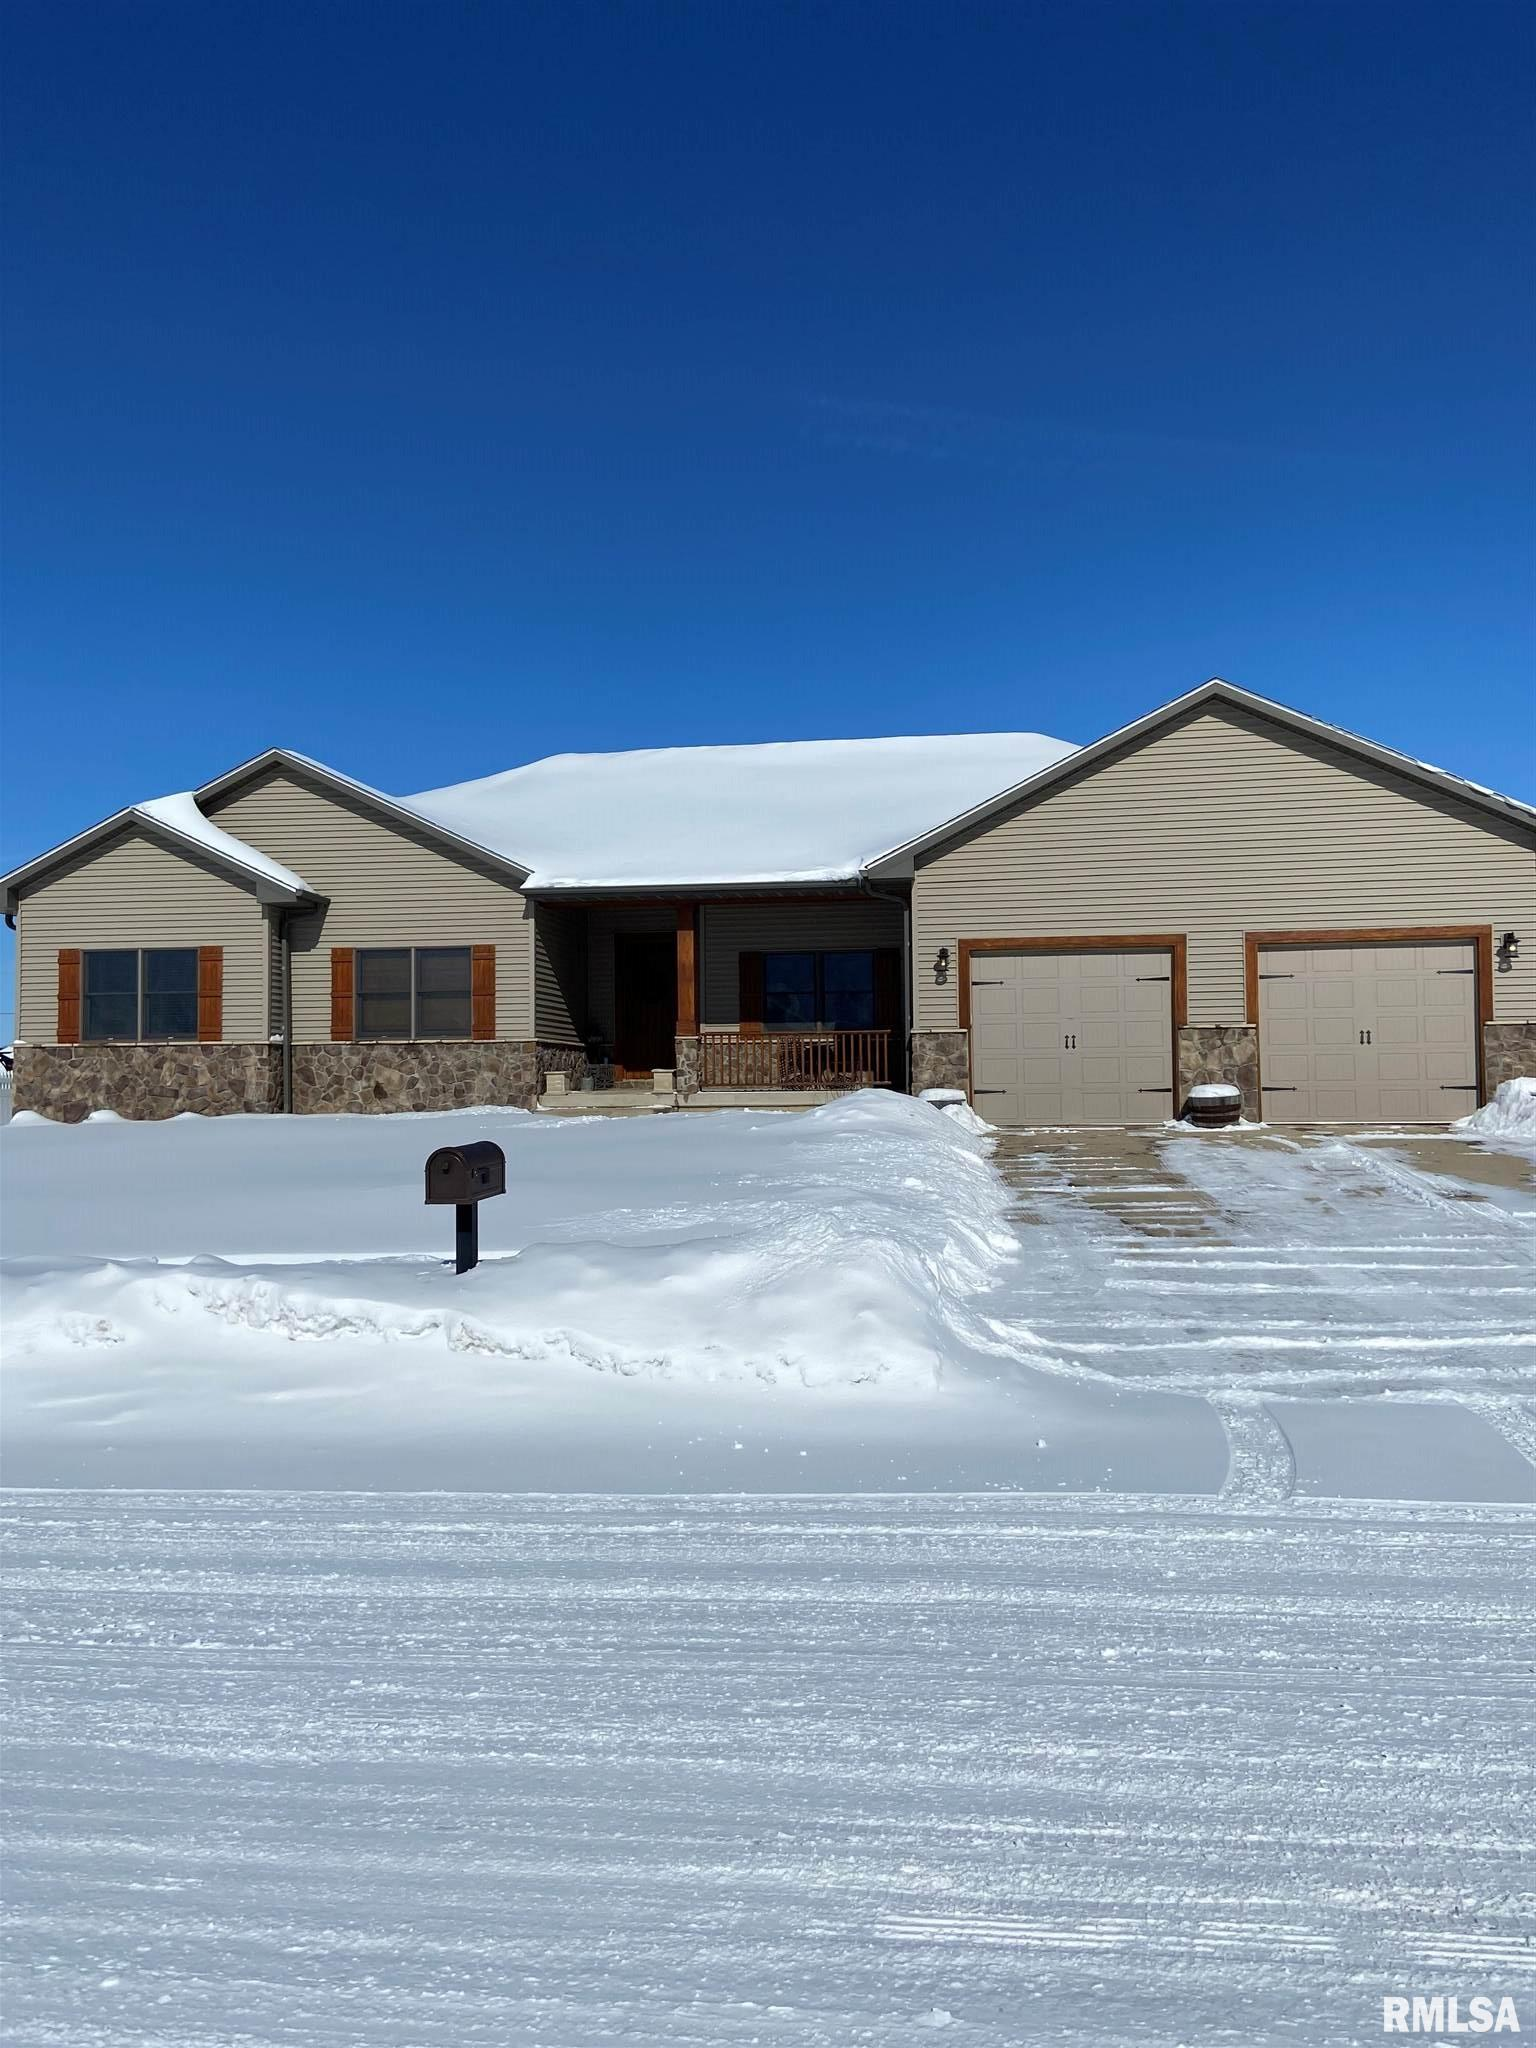 1516 MACKIN Property Photo - De Witt, IA real estate listing